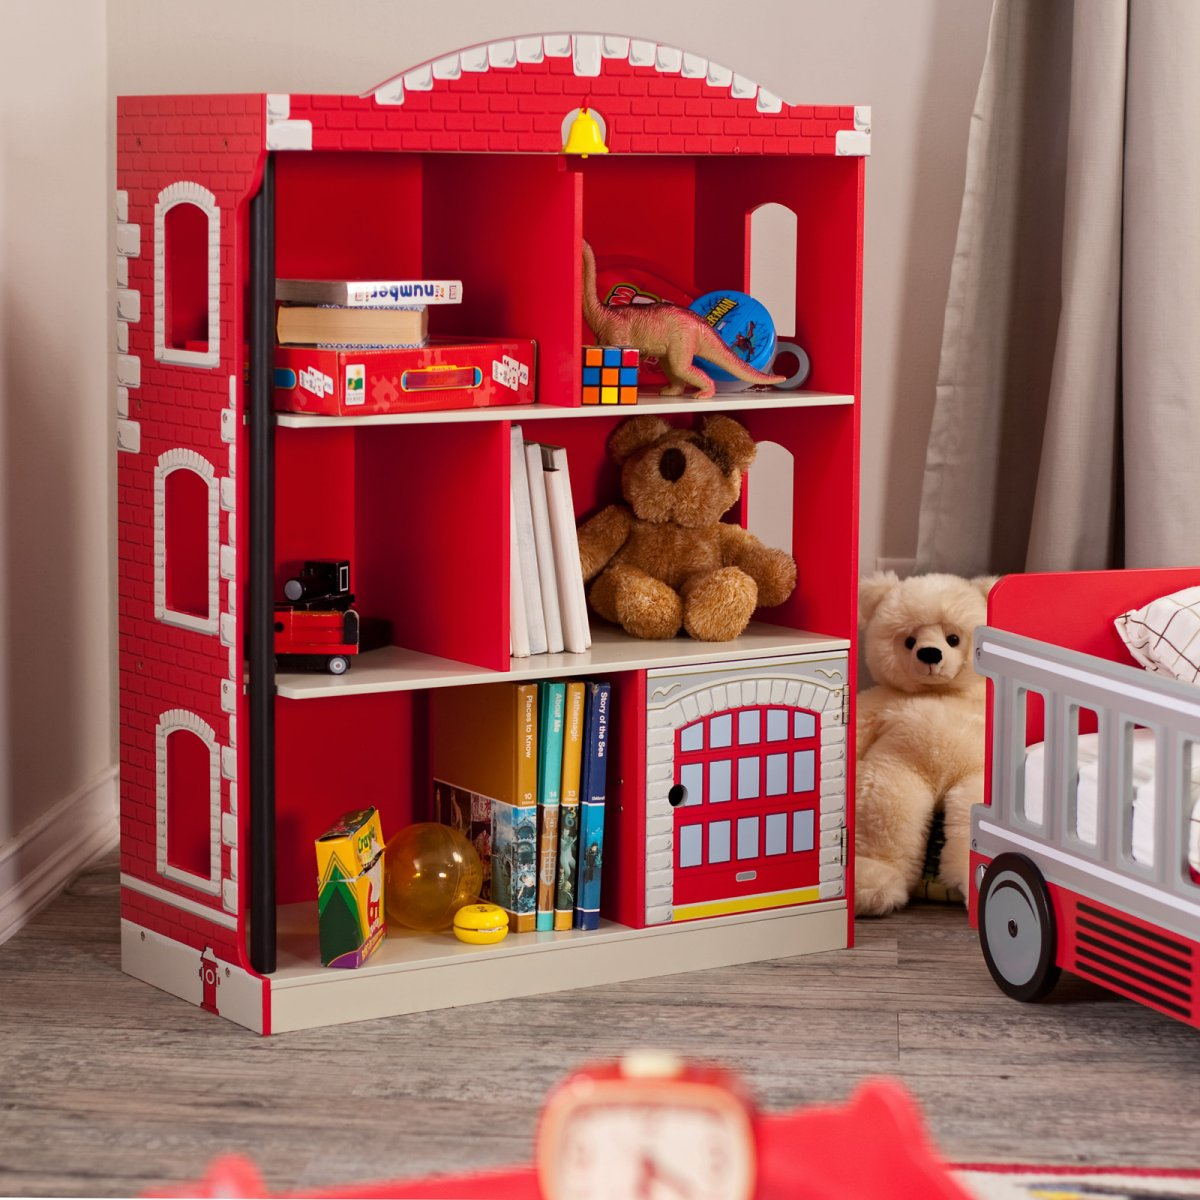 Bookshelf For Kids Room Adorable Dollhouse Bookshelves For Kids To Decorate The